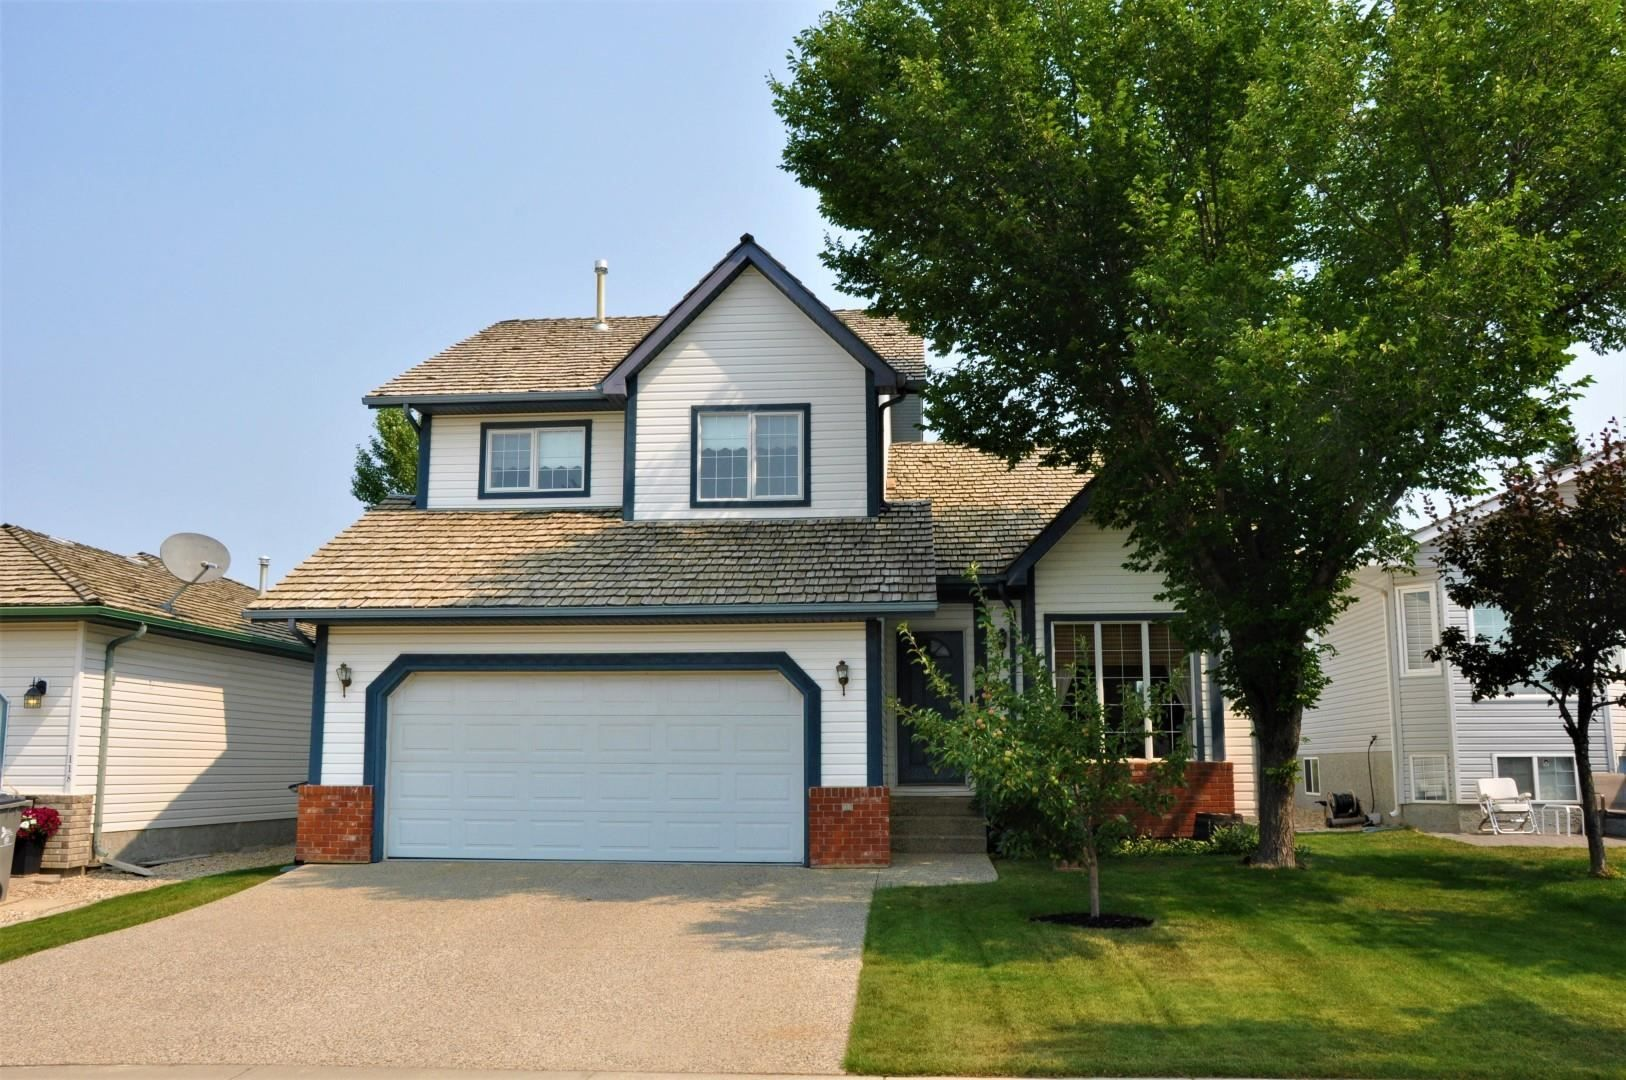 Main Photo: 120 COLONIALE Way: Beaumont House for sale : MLS®# E4256904